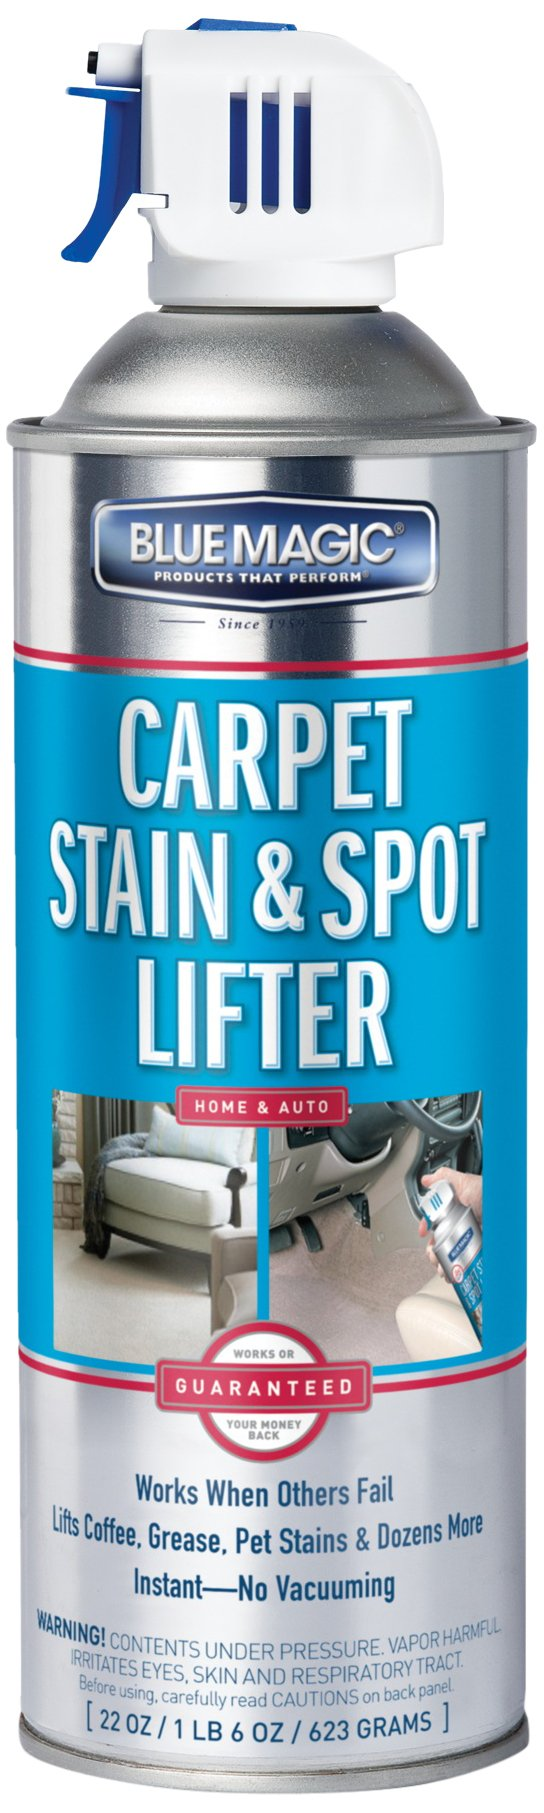 Blue Magic 900-06PK Carpet Stain and Spot Lifter-22 fl. oz, (Pack of 6), 22. Fluid_Ounces, 6 Pack